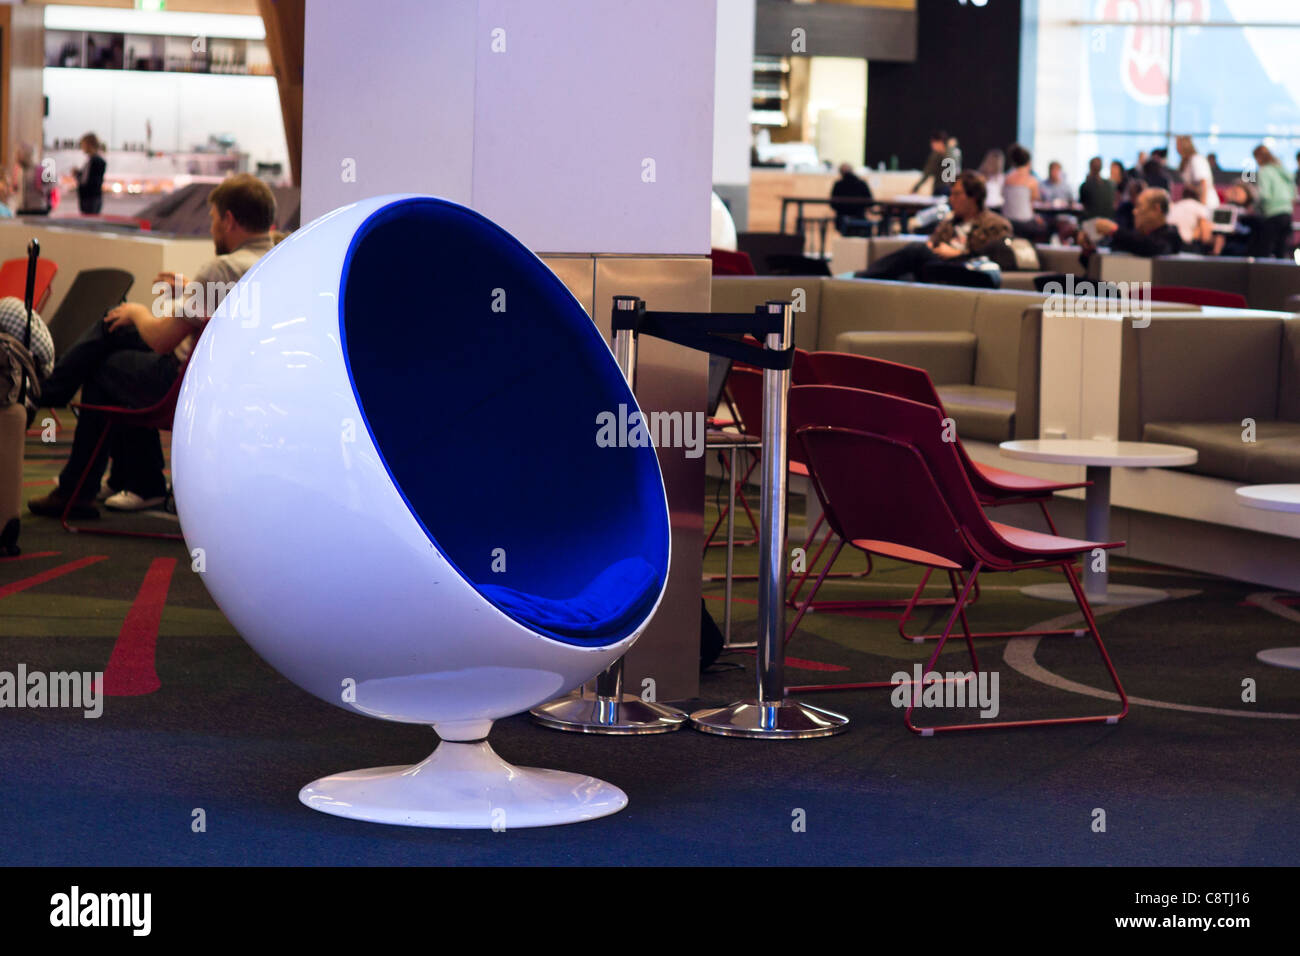 Modern Ball Chair At The Airport. Auckland International Airport, New  Zealand.   Stock